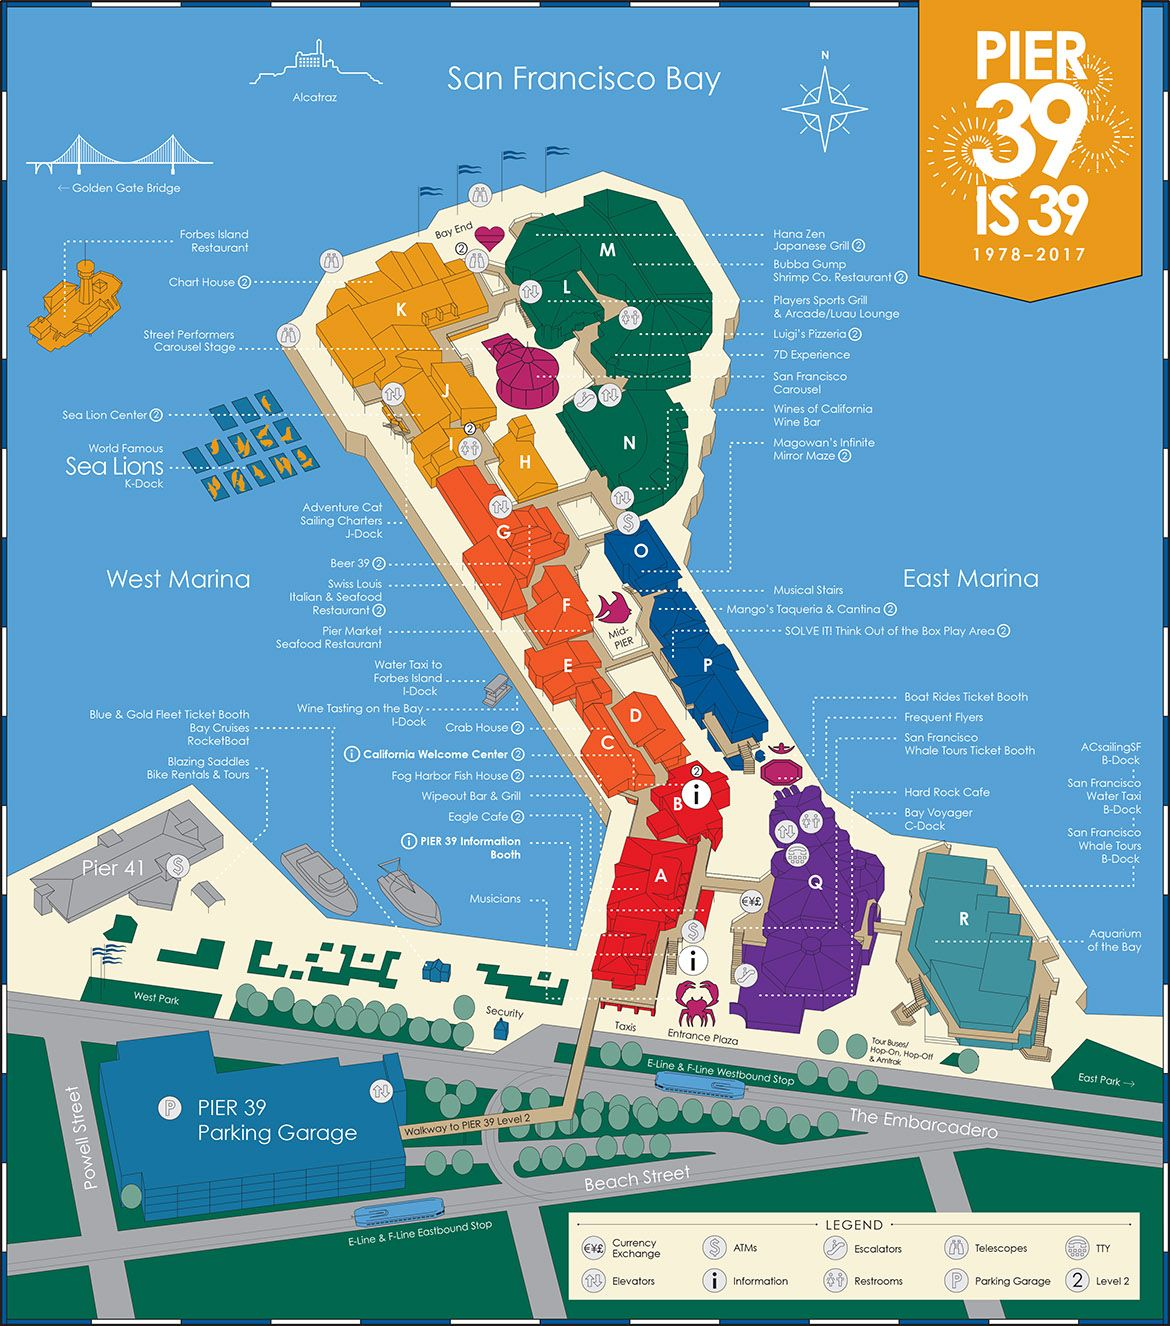 A PIER 39 Map which is downloadable and printable showing various